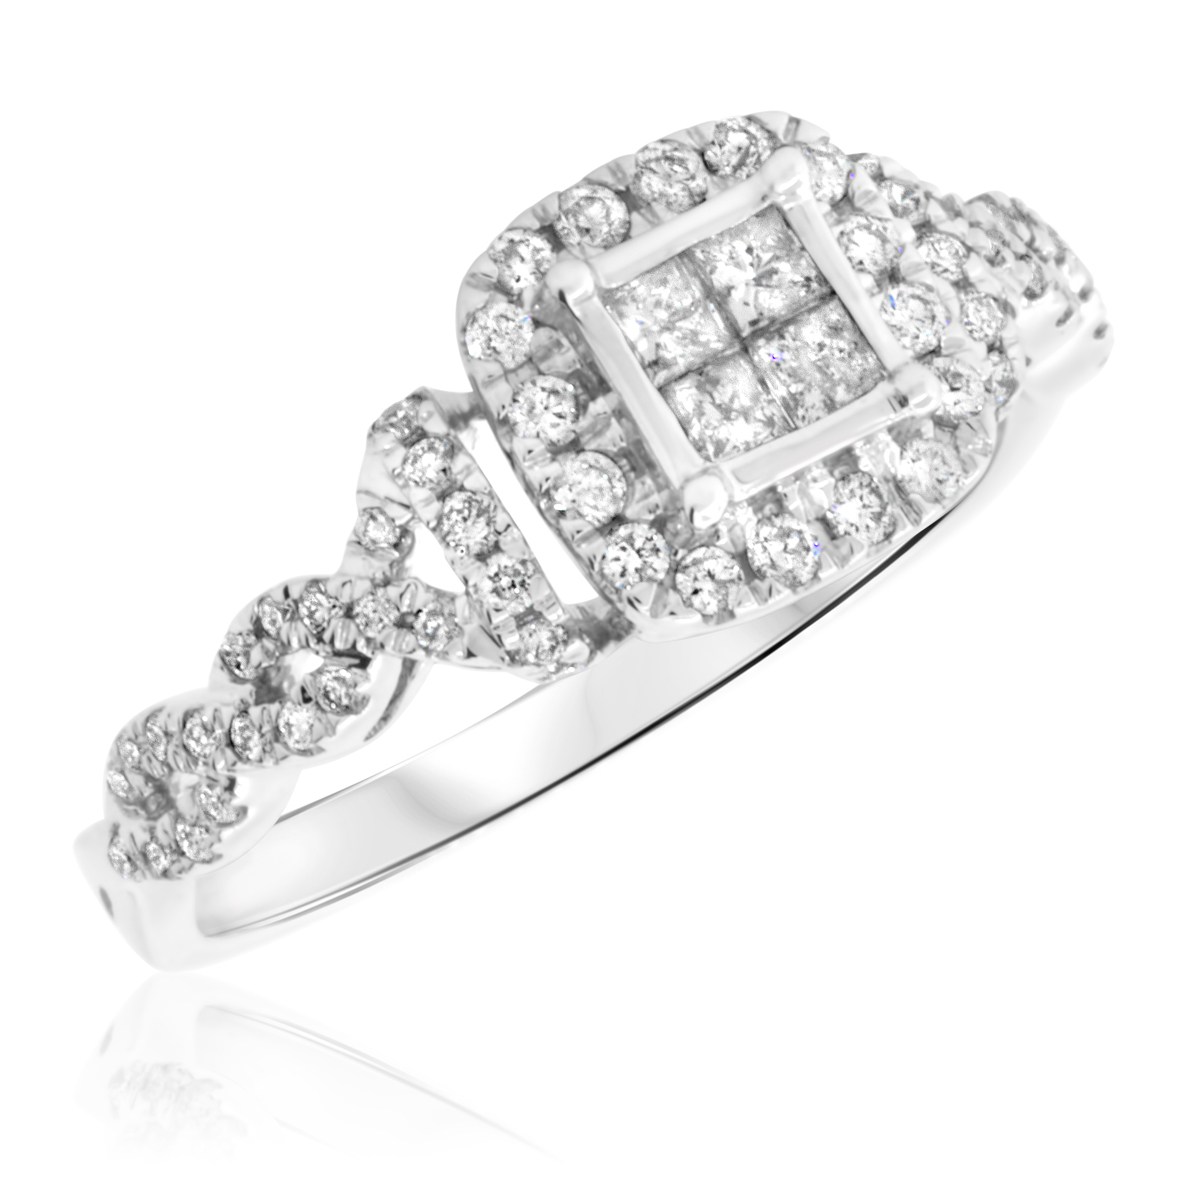 12 carat tw princess round cut diamond ladies